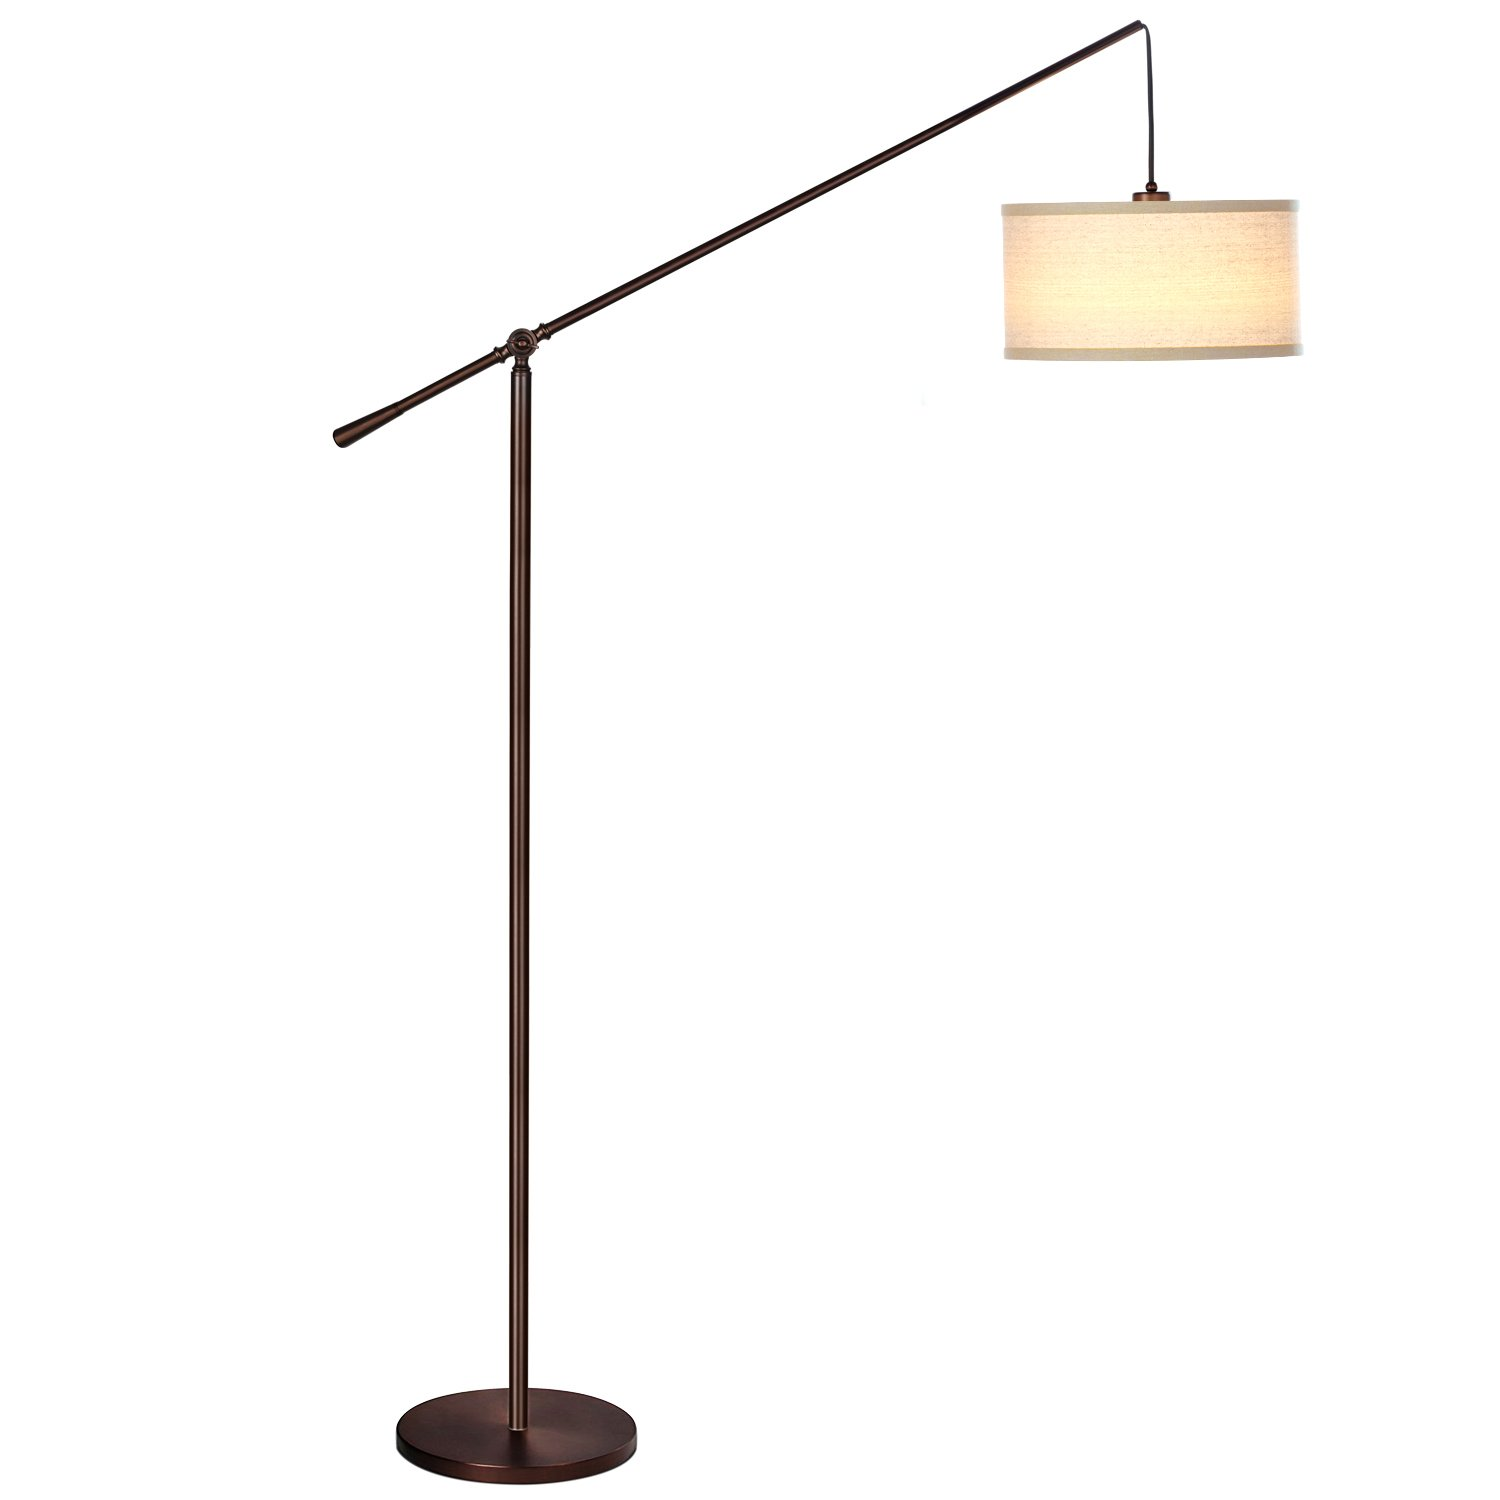 Brightech Hudson 2 - Living Room LED Arc Floor Lamp for Behind The Couch - Pole Hanging Light to Stand up Over The Sofa - with LED Bulb- Oil Brushed Bronze